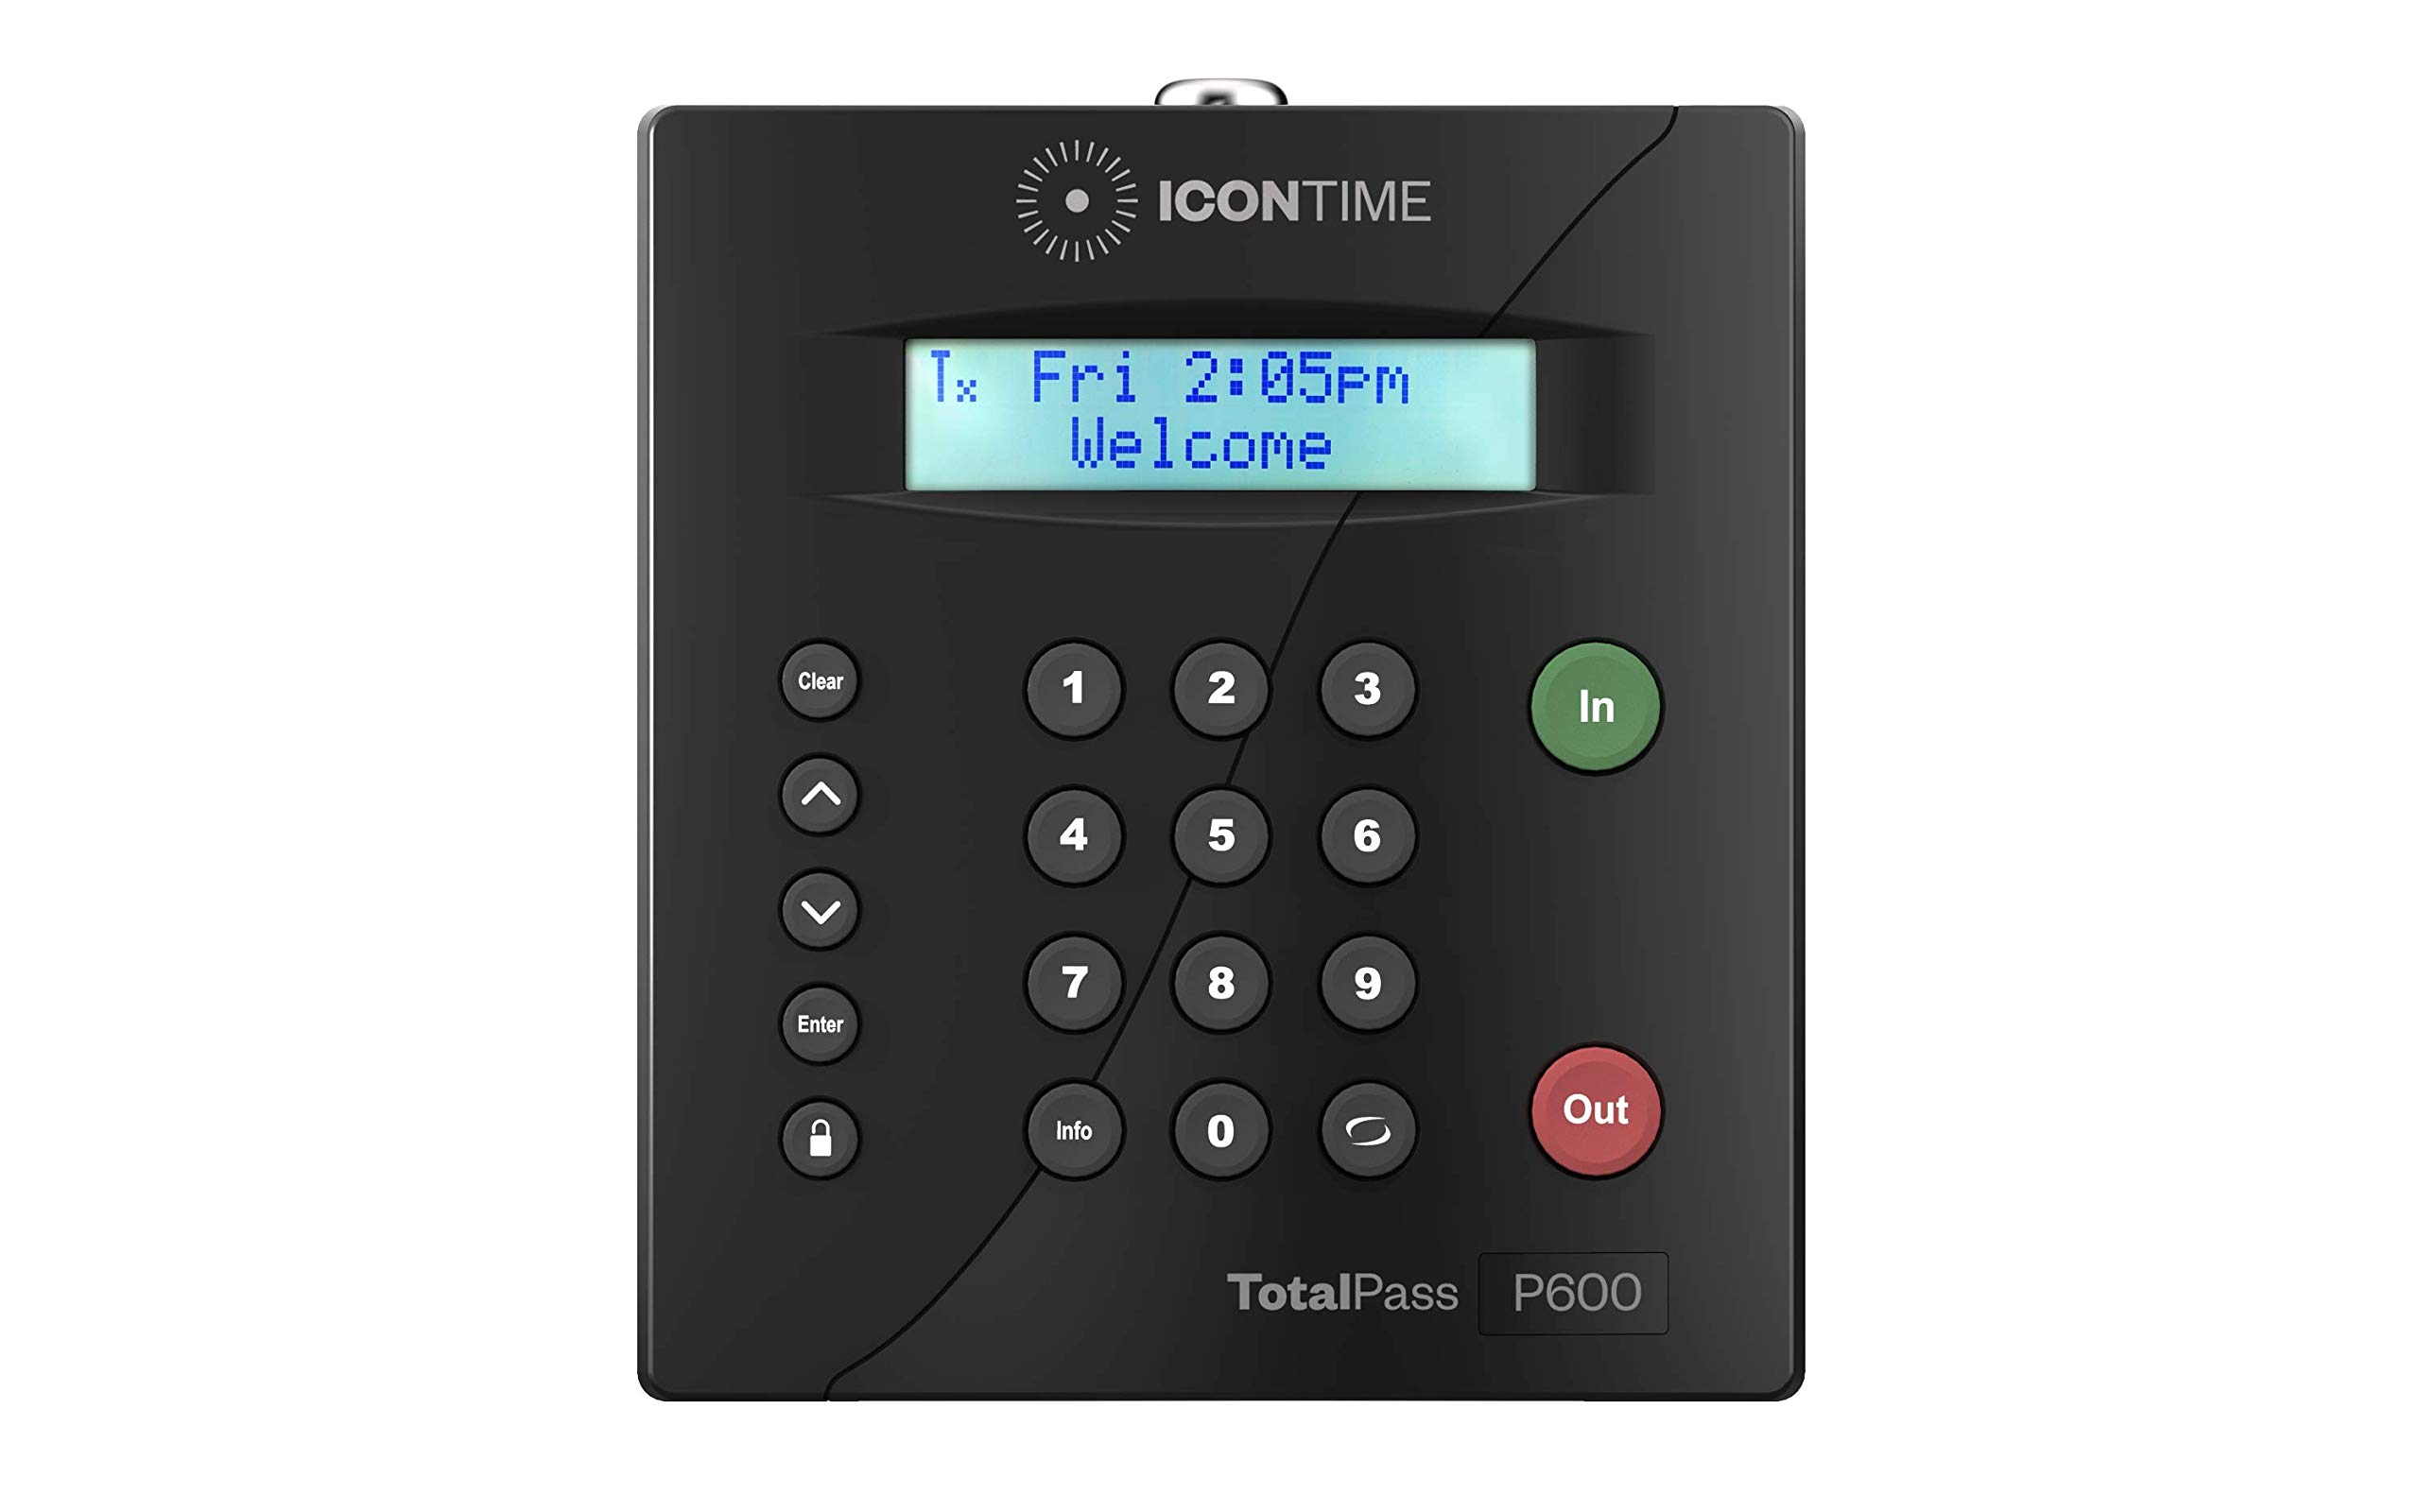 TotalPass P600 Employee Time Clock | Ready to Use Out-of-The-Box| Manage Timecards via USB, Network, Wi-Fi or Web| No Monthly Fees by Icon Time Systems